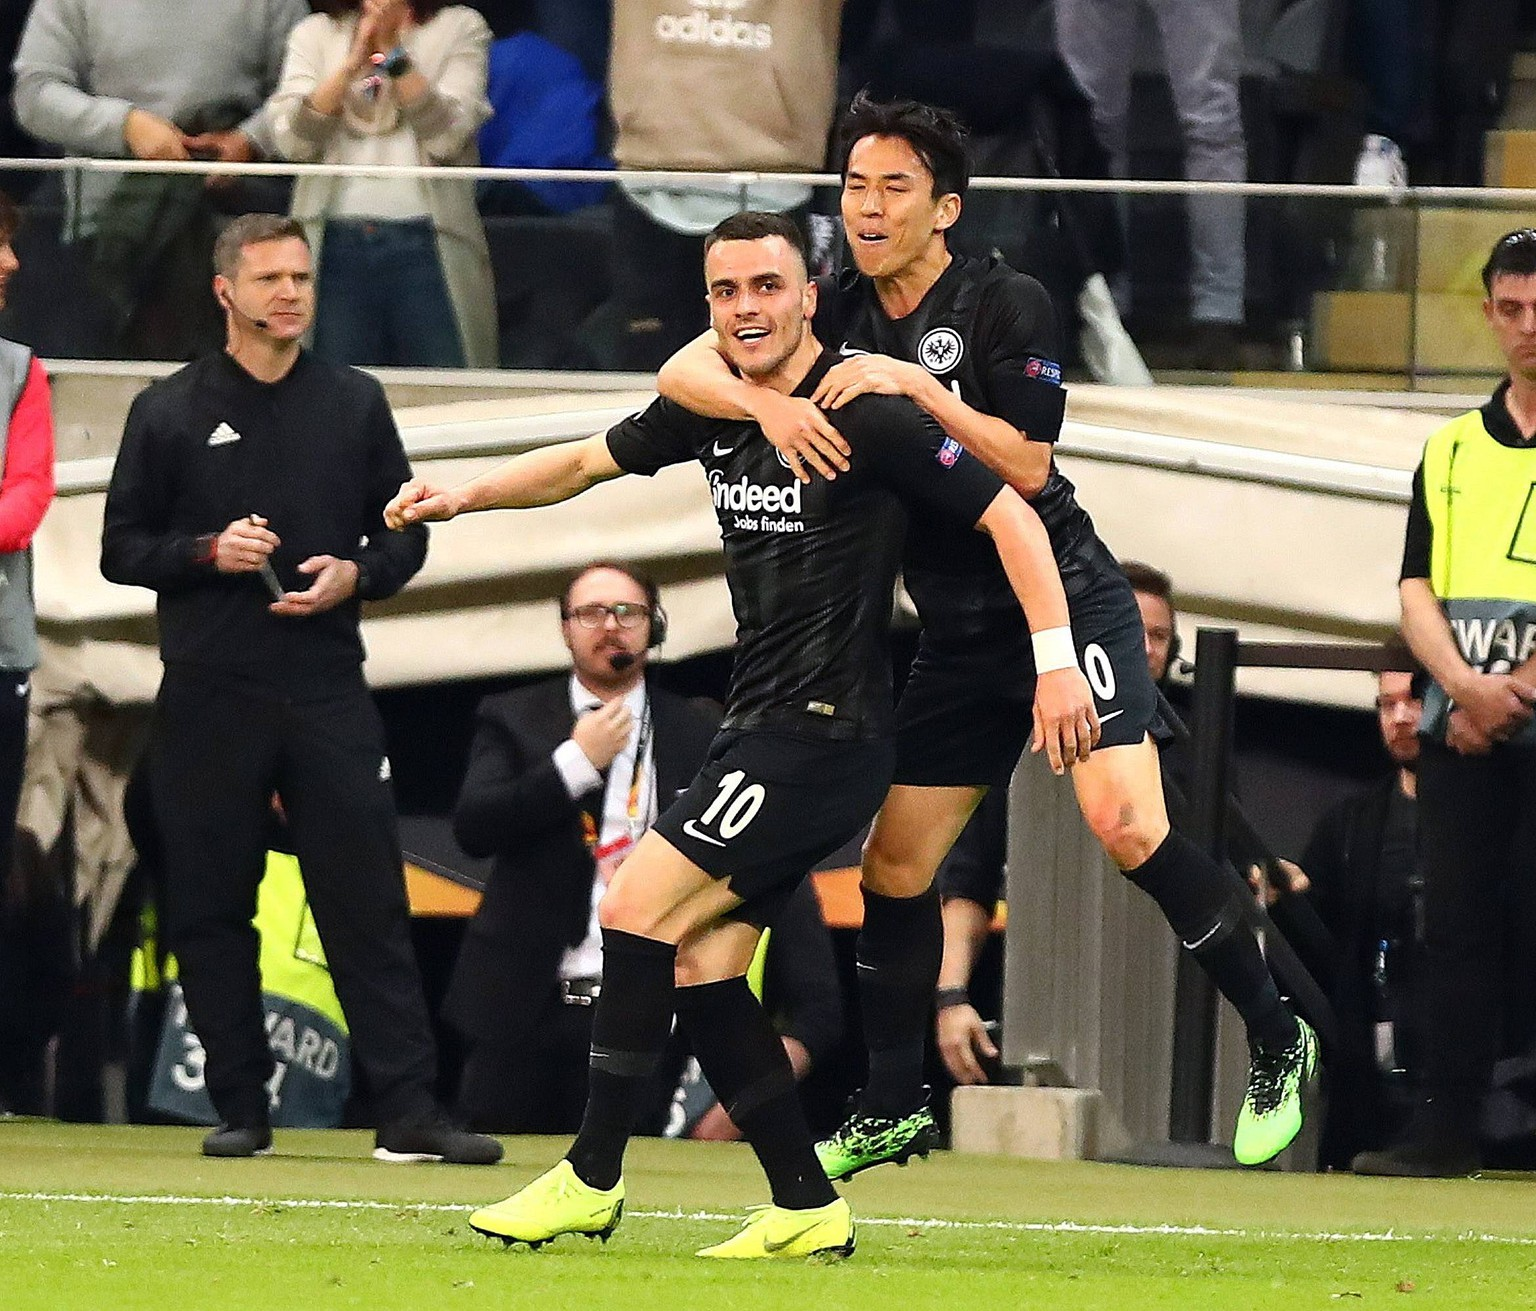 Filip Kostic (Frankfurt, links) und Makoto Hasebe (Frankfurt) feiern das Tor von Kostic zum 1:0 gegen Lissabon Eintracht Frankfurt vs Benfica Lissabon, Fussball, Europa League, 18.04.2019 Eintracht Frankfurt vs Benfica Lissabon, Fussball, Europa League, 18.04.2019 Frankfurt *** Filip Kostic Frankfurt left and Makoto Hasebe Frankfurt celebrate Kostics 1-0 goal against Lisbon Eintracht Frankfurt vs. Benfica Lisbon Football Europa League 18 04 2019 Eintracht Frankfurt vs. Benfica Lisbon Football Europa League 18 04 2019 Frankfurt Copyright: xEIBNER/RenexWeissx EP_RWS